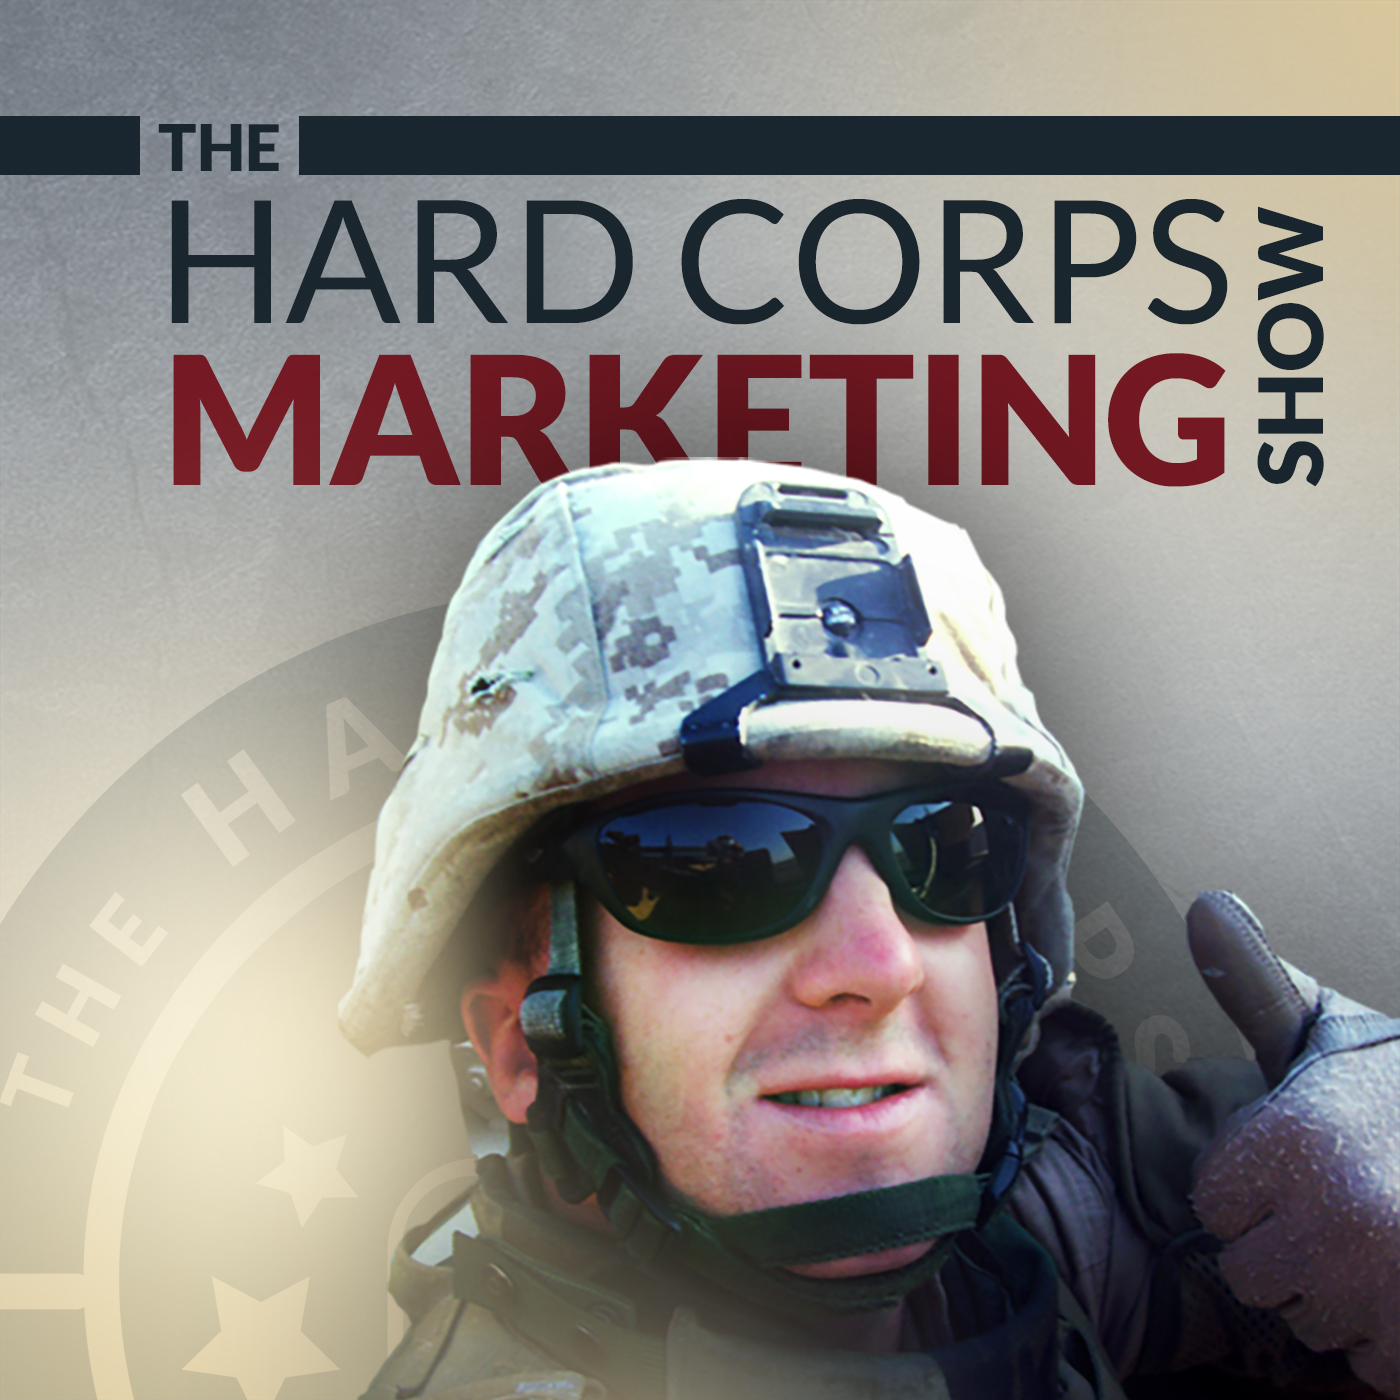 Develop Engaging Customer Relationships - Keith Phillips - Hard Corps Marketing Show #72